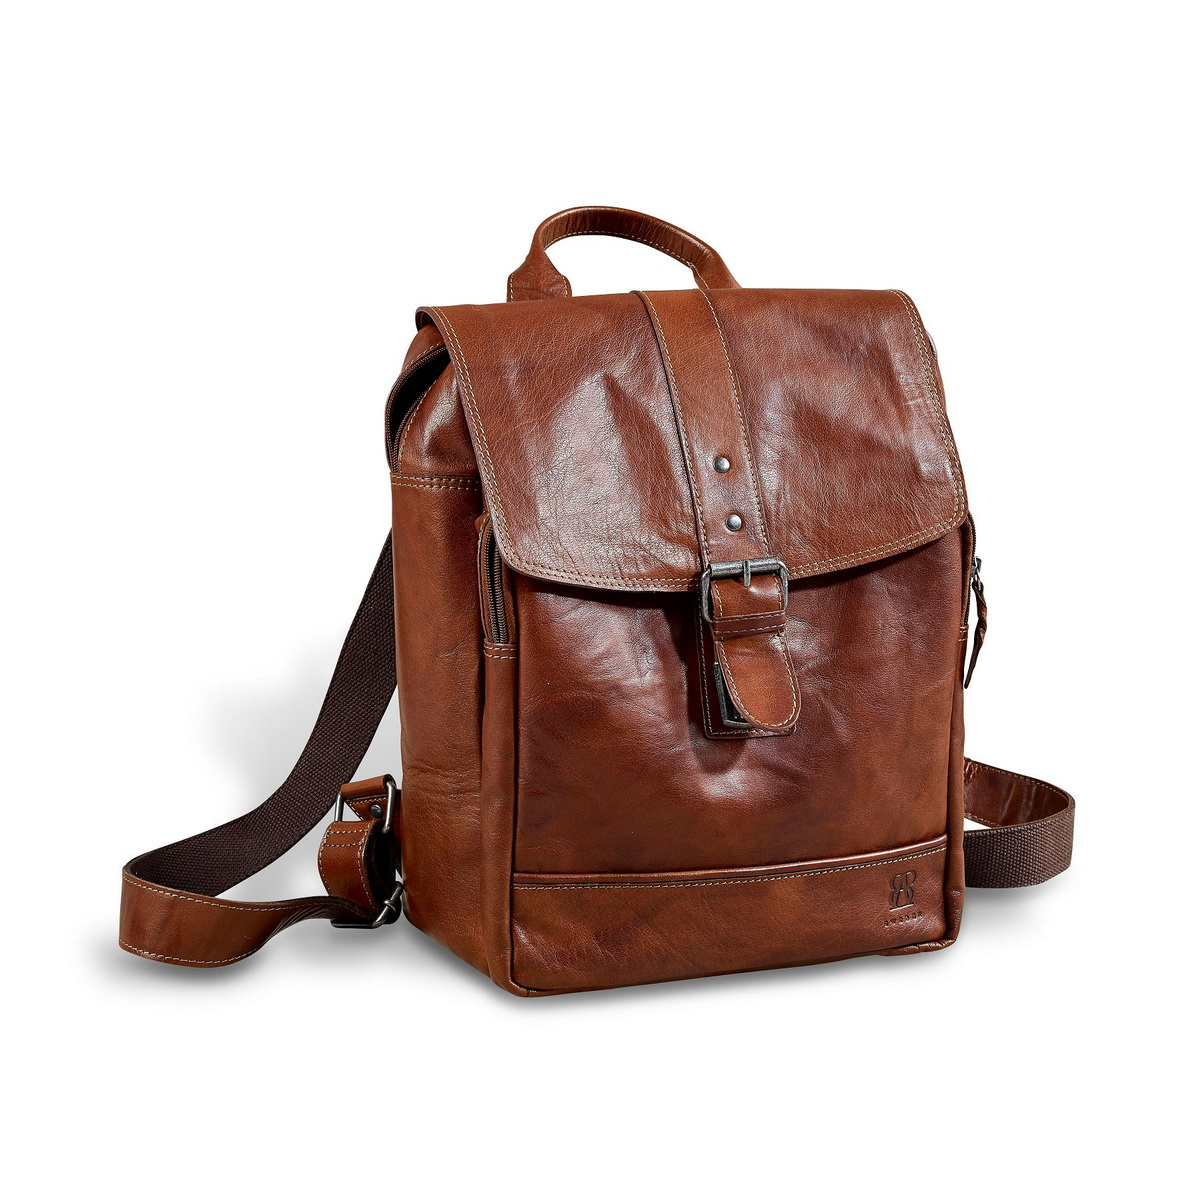 Leather City Backpack / Rucksack from B away (brown)